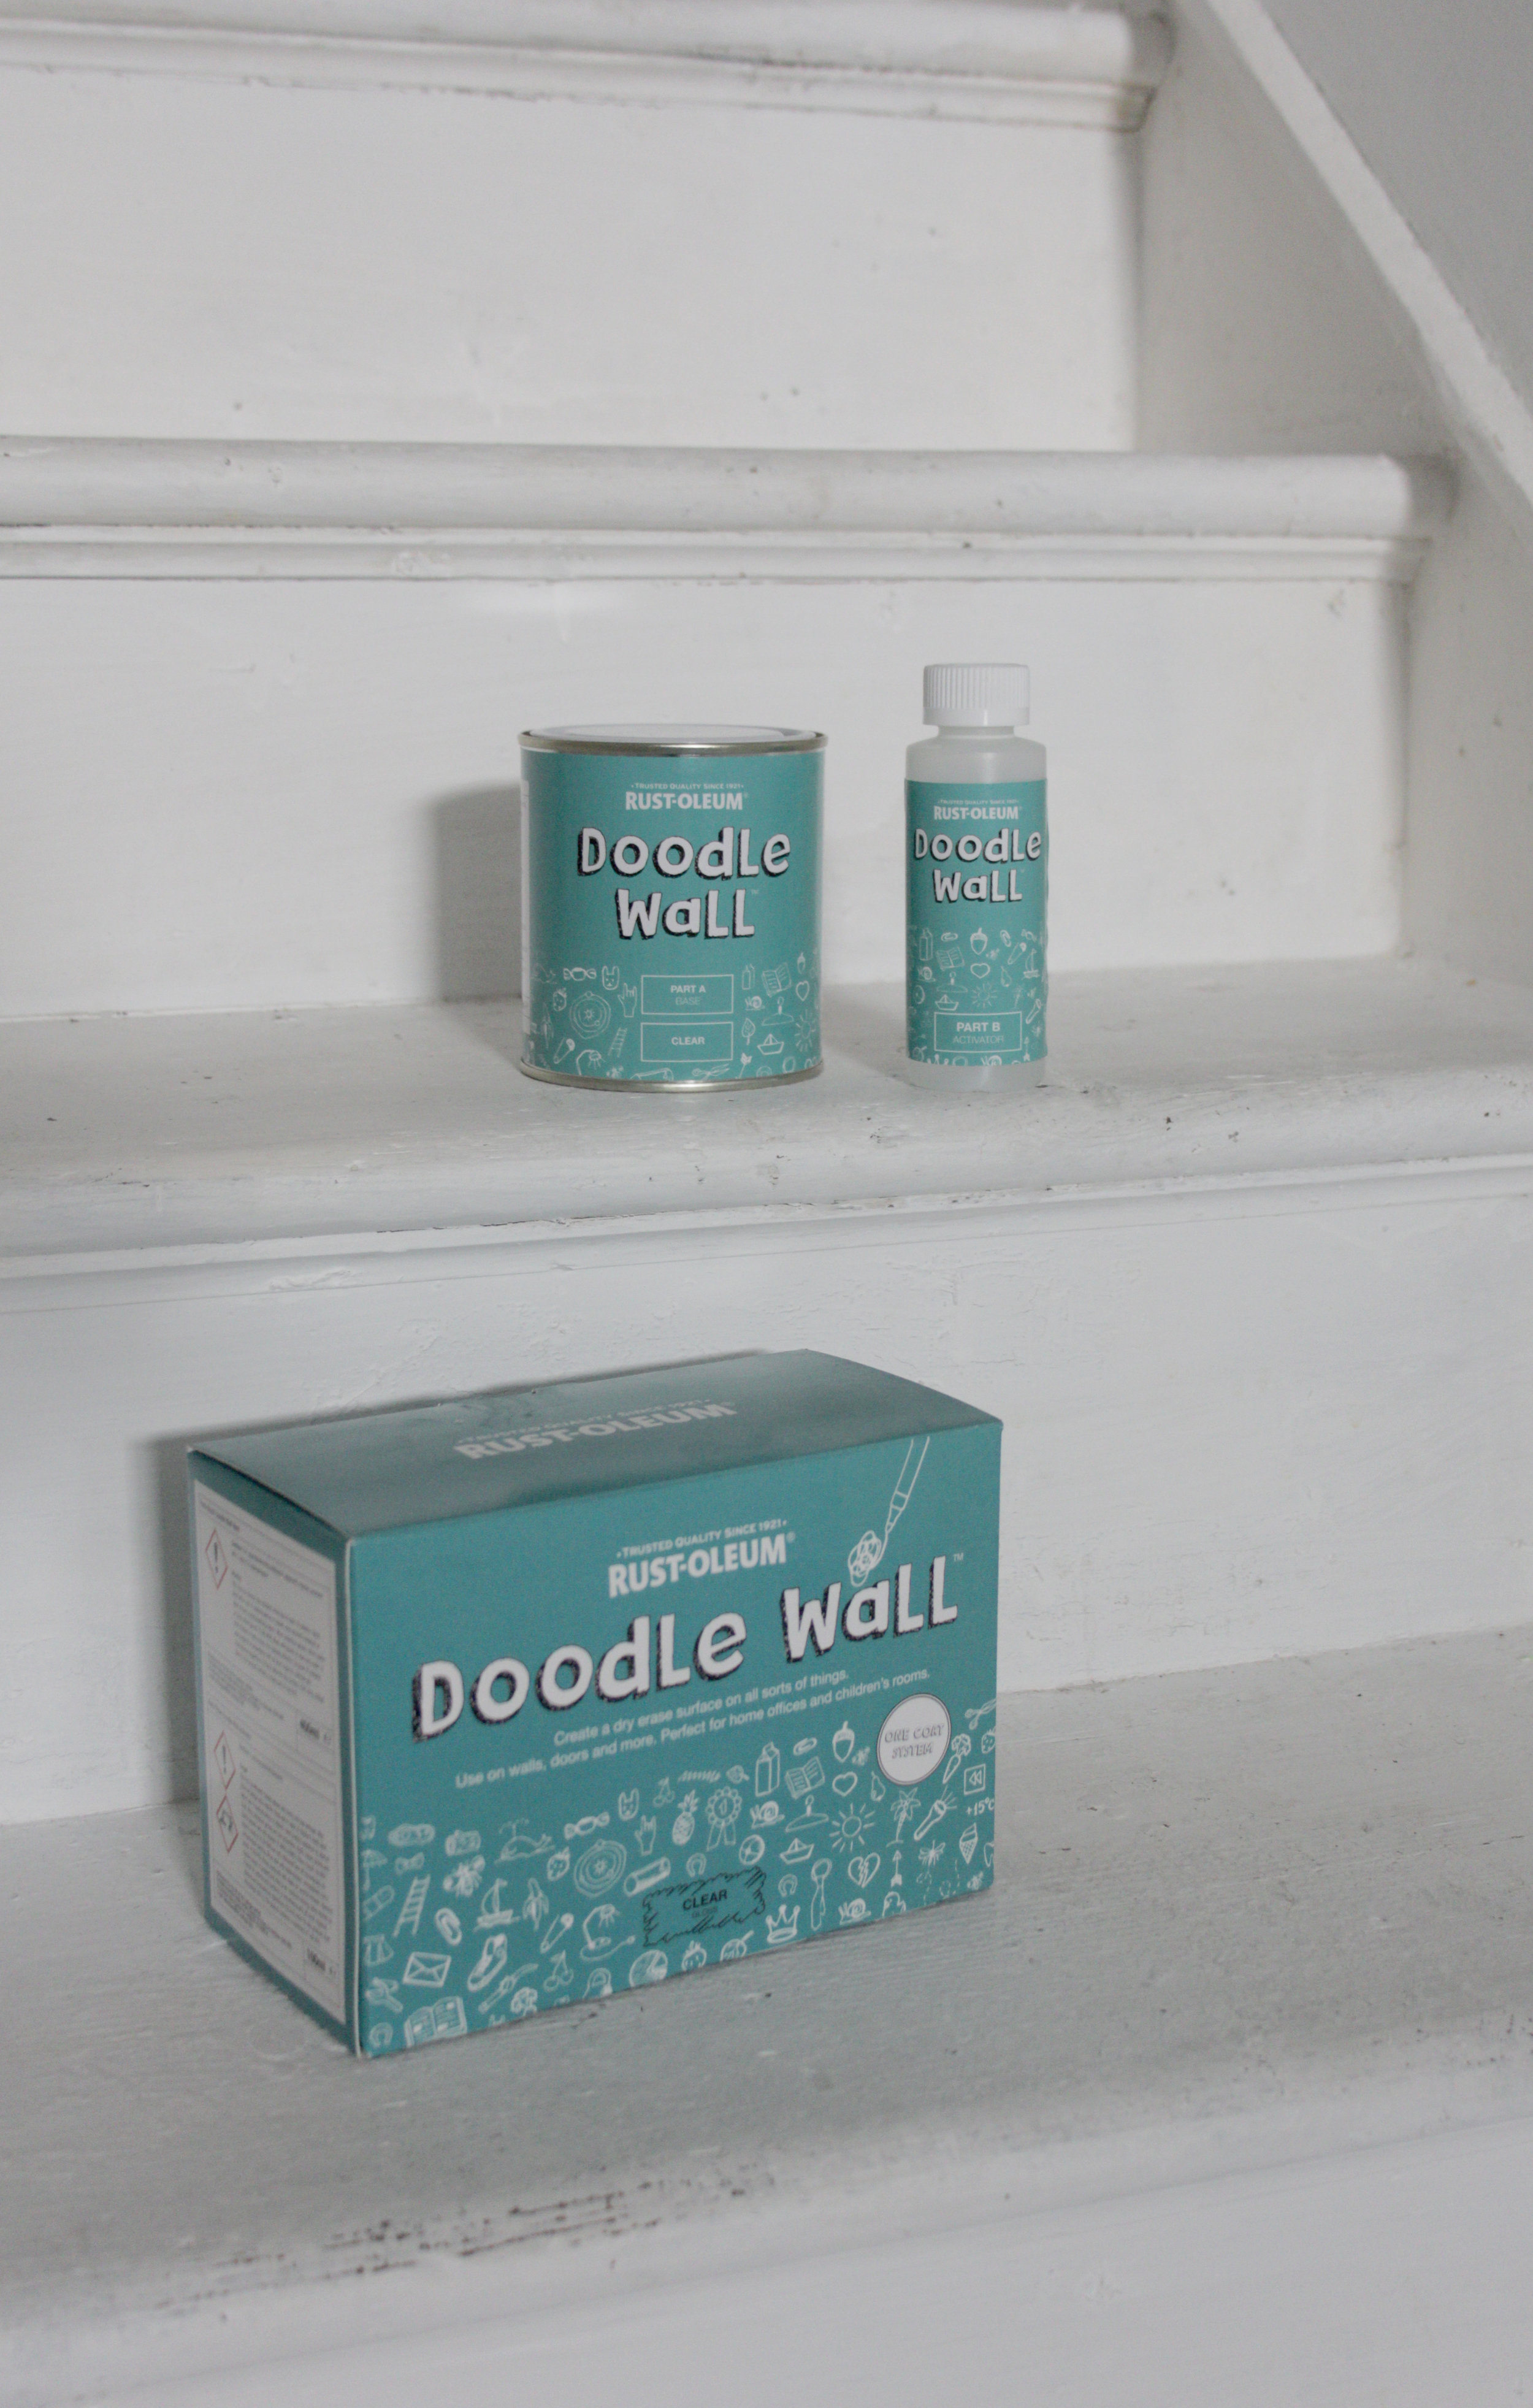 Doodle Wall by Rust-Oleum